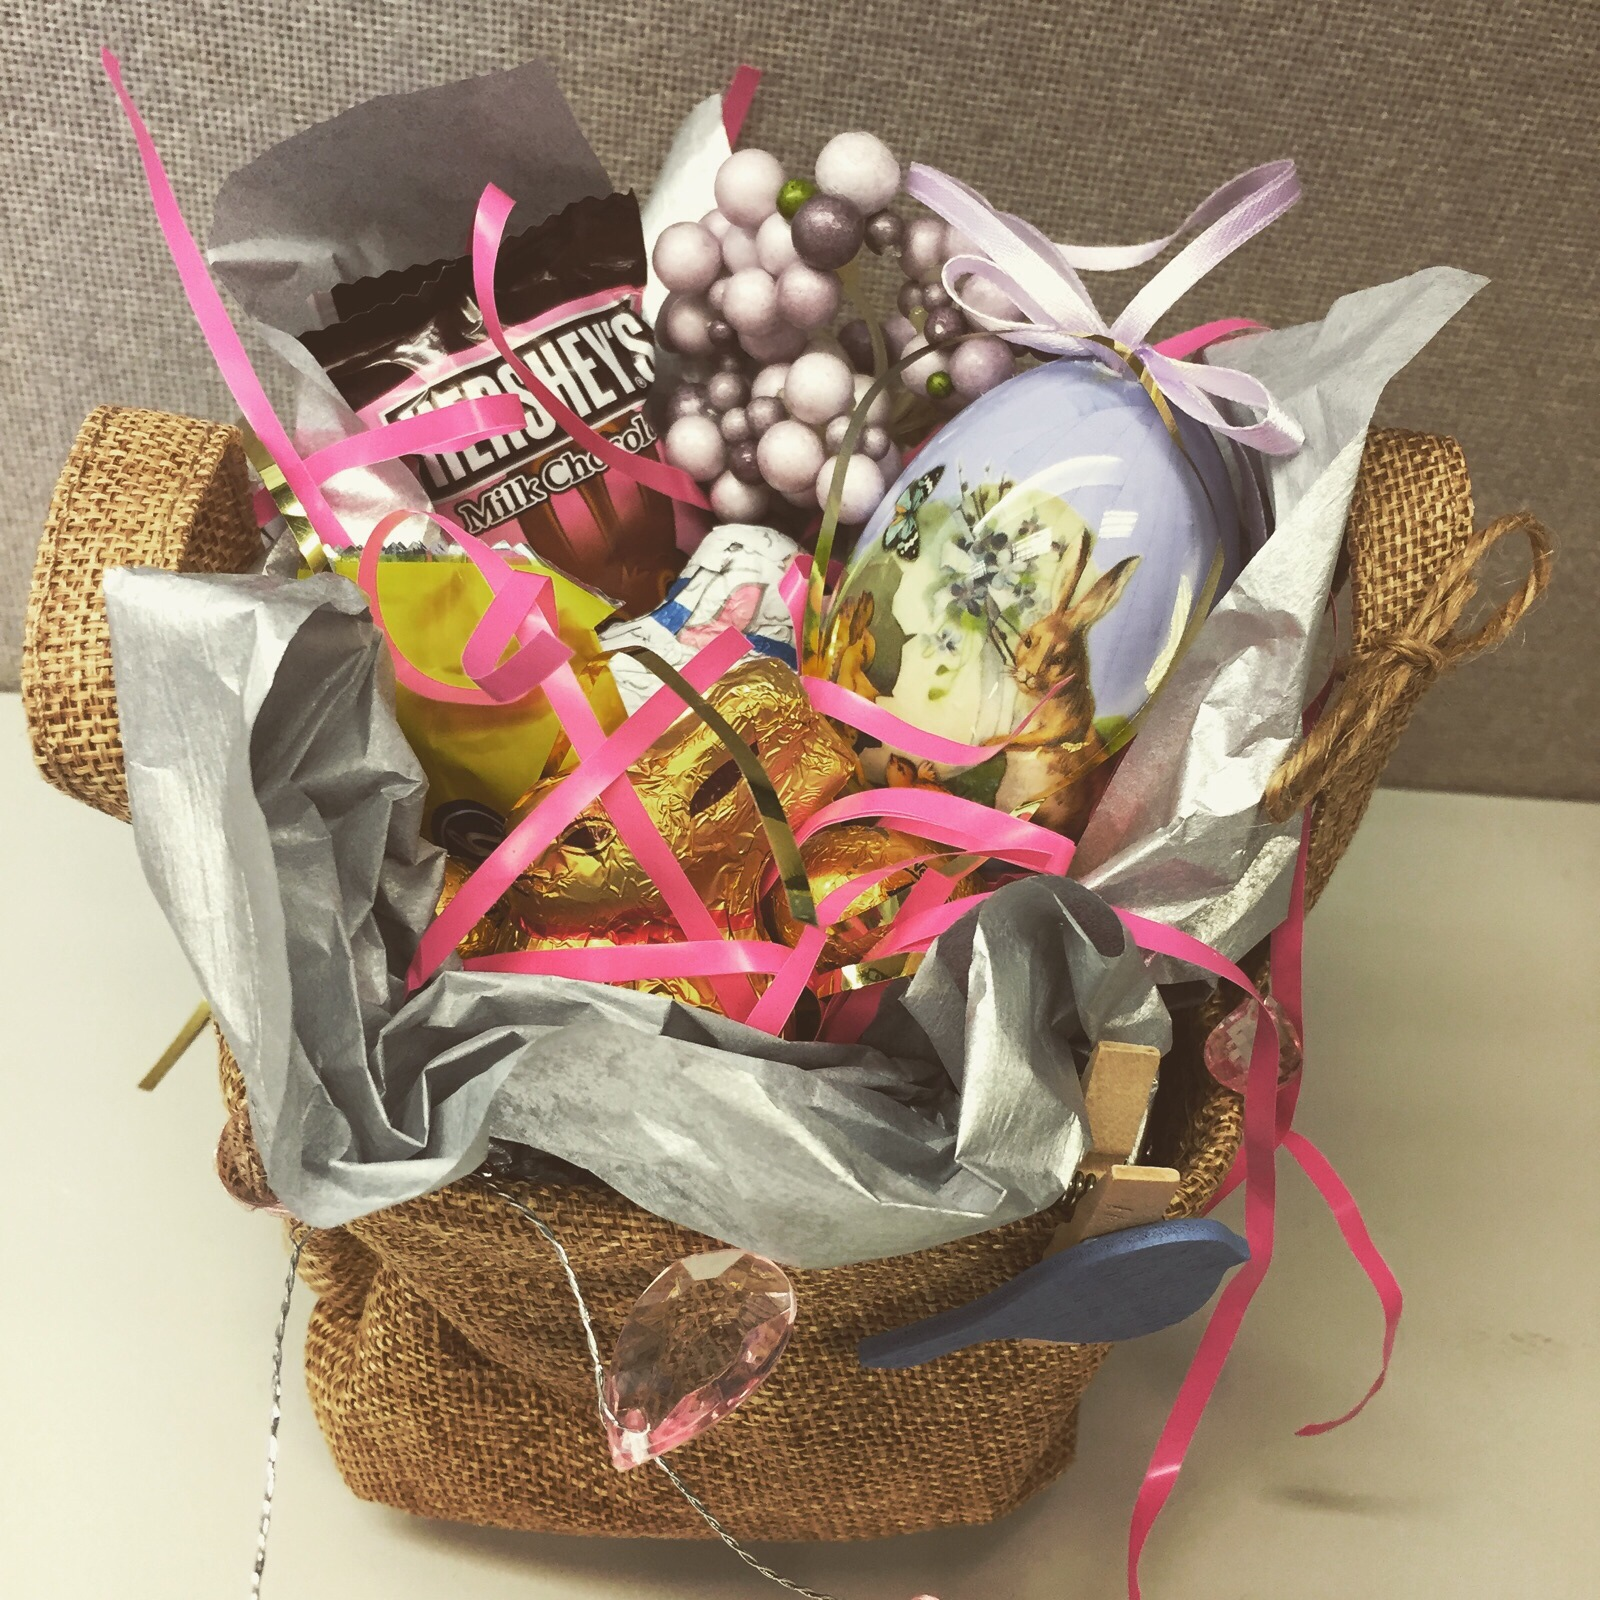 Gift baskets and bags rose and twig floral designs a small burlap basket from the target dollar display makes a great rustic themed easter basket these were treats for my awesome product management team negle Choice Image